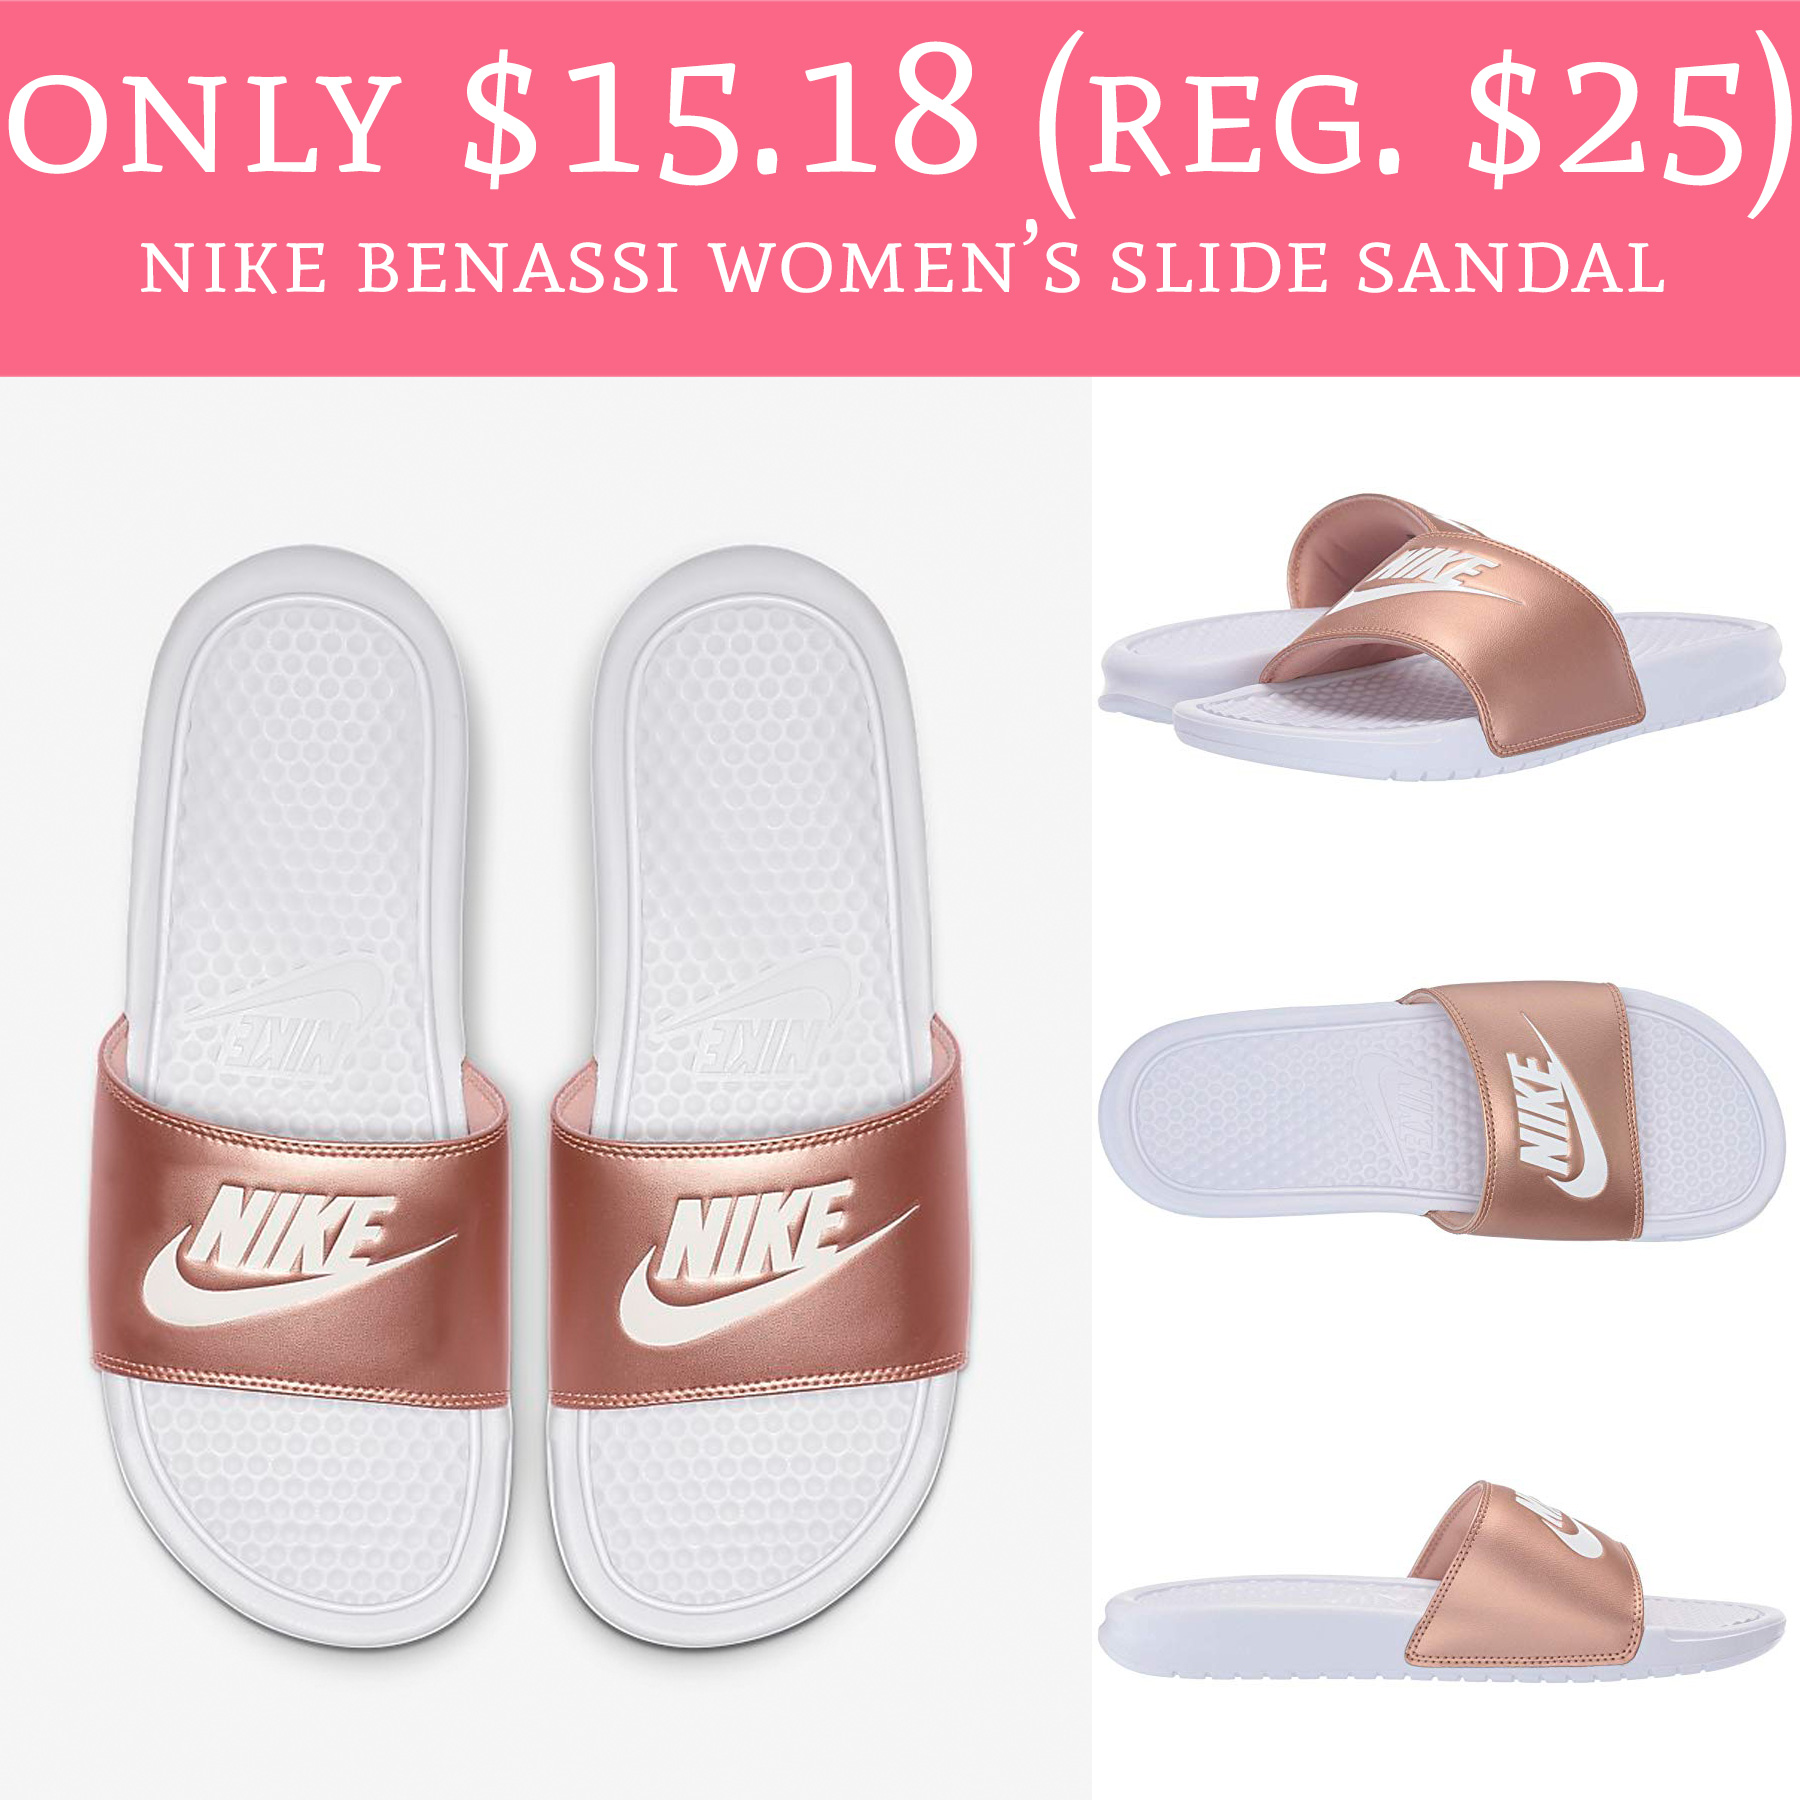 8679c1212335 Only  15.18 (Regular  25) Nike Benassi Women s Slide Sandal - Deal ...